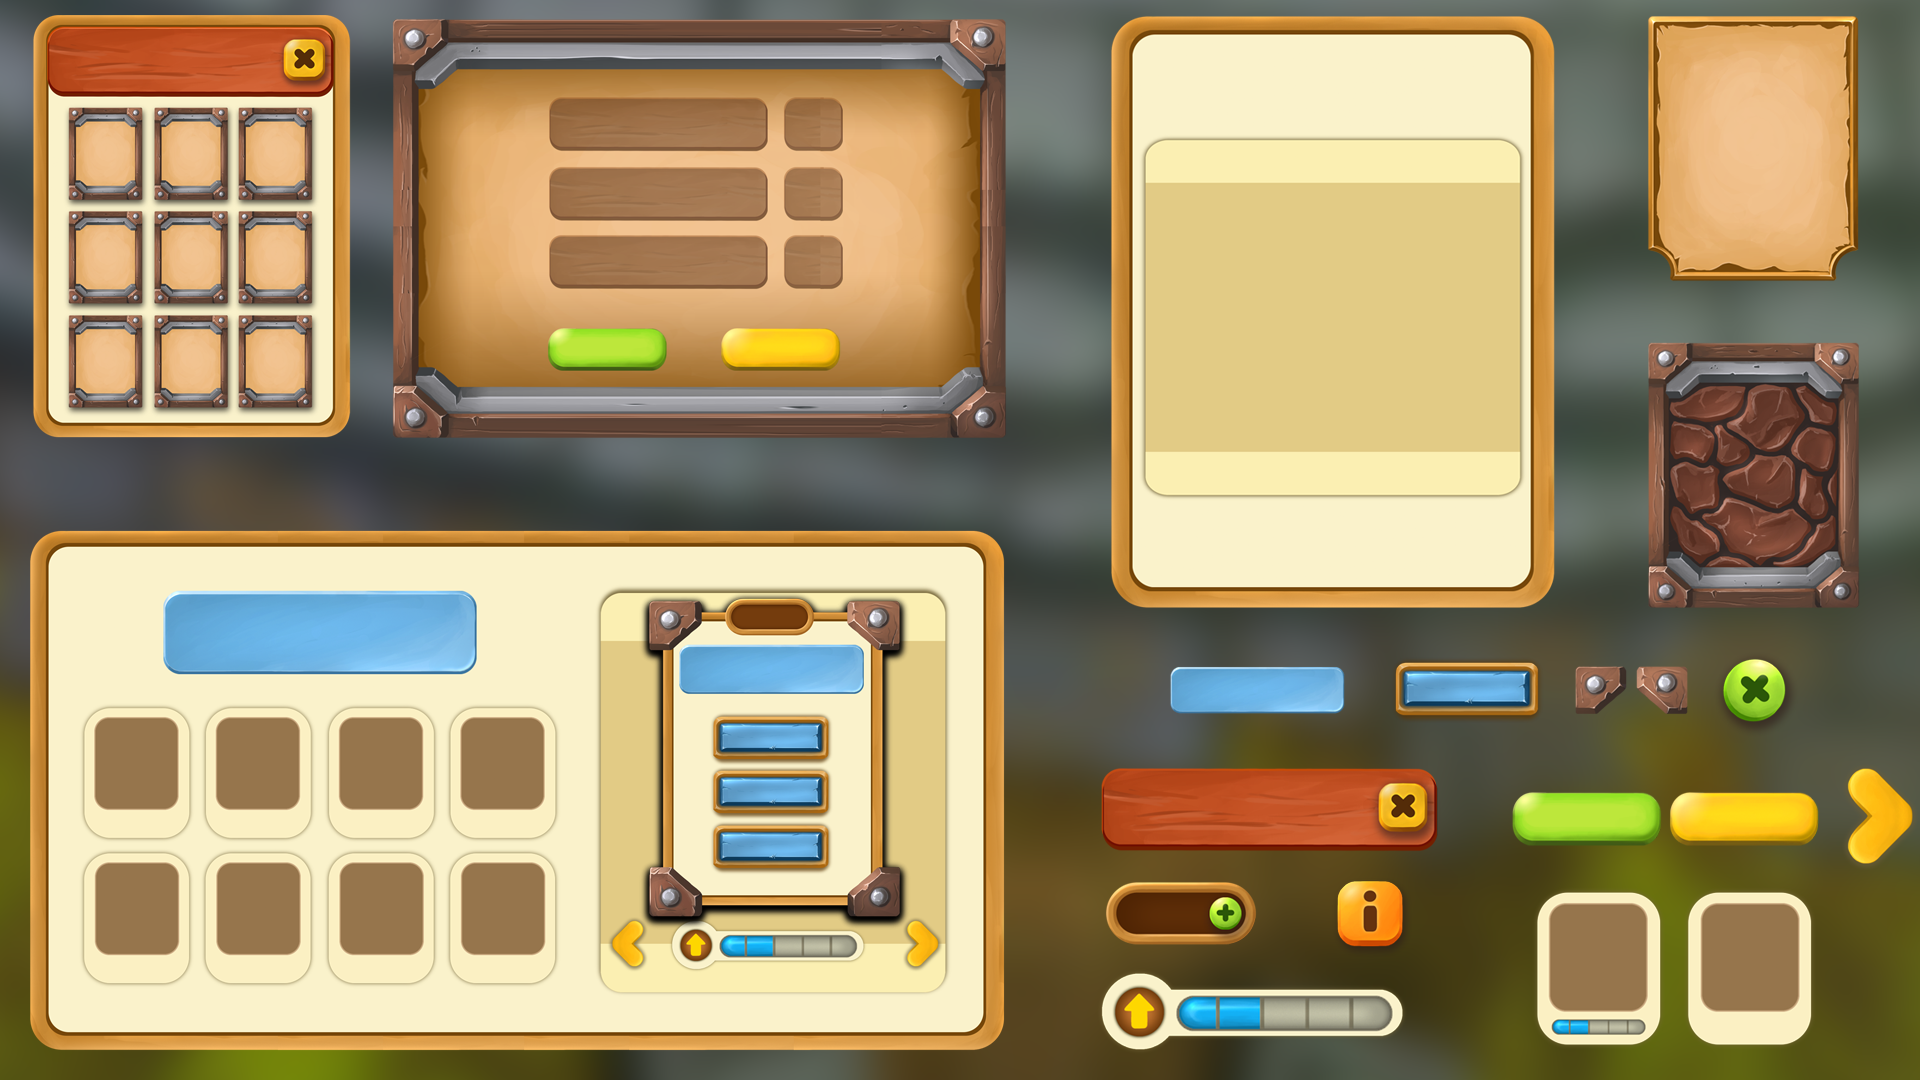 Mobile Game UI by REXARD in 2D Assets - UE4 Marketplace